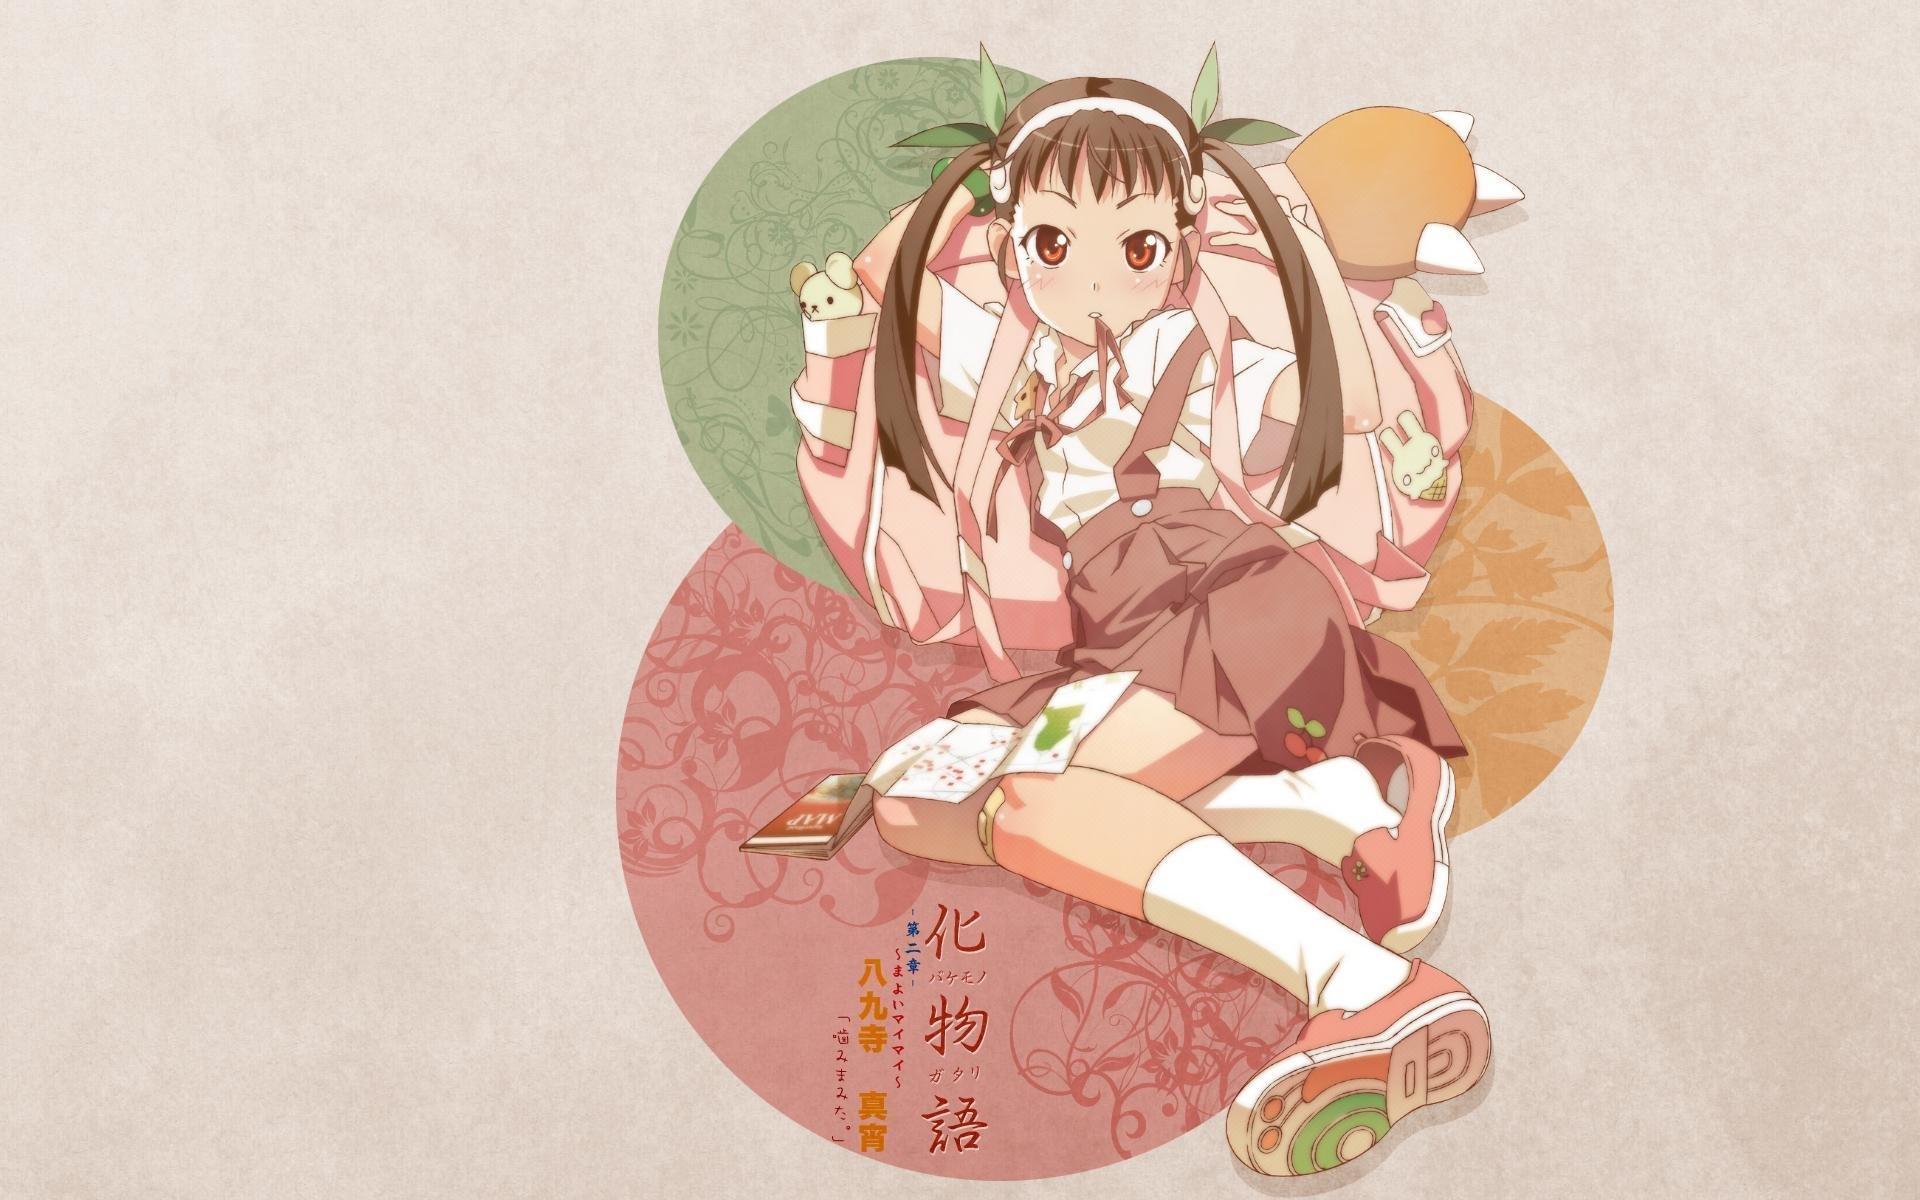 Mayoi Hachikuji wallpapers 1920x1200 desktop backgrounds